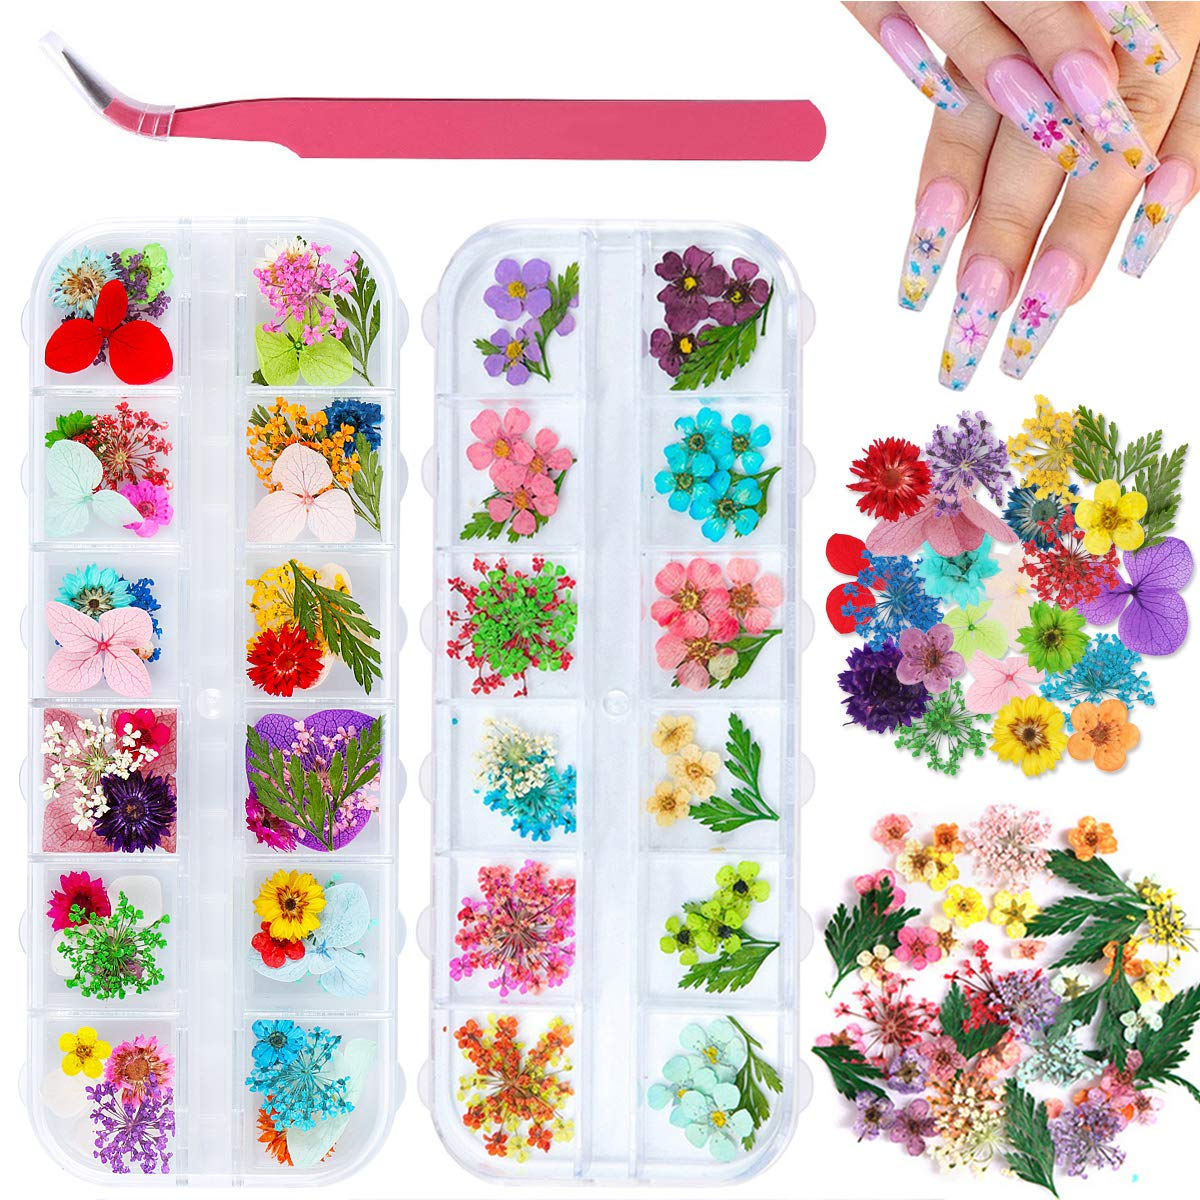 2 Boxes OFFicial Dried Flowers for Nail Colors National uniform free shipping Dry Flowe Art 24 KISSBUTY